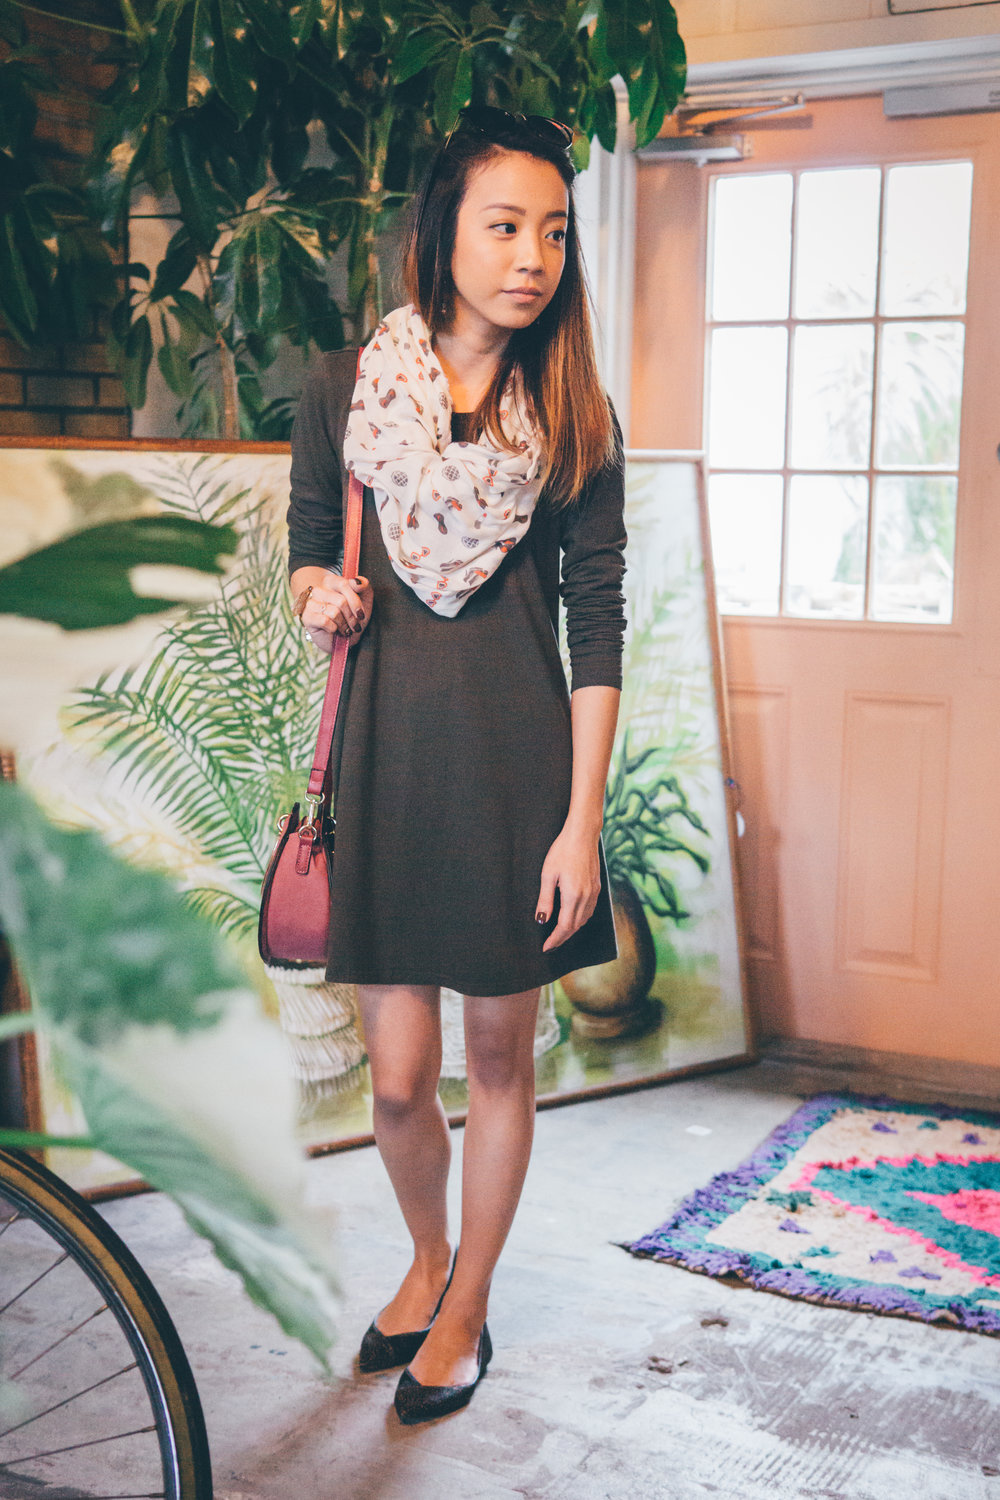 This Jenn Girl - Tampa Blogger - French Sole NY 1